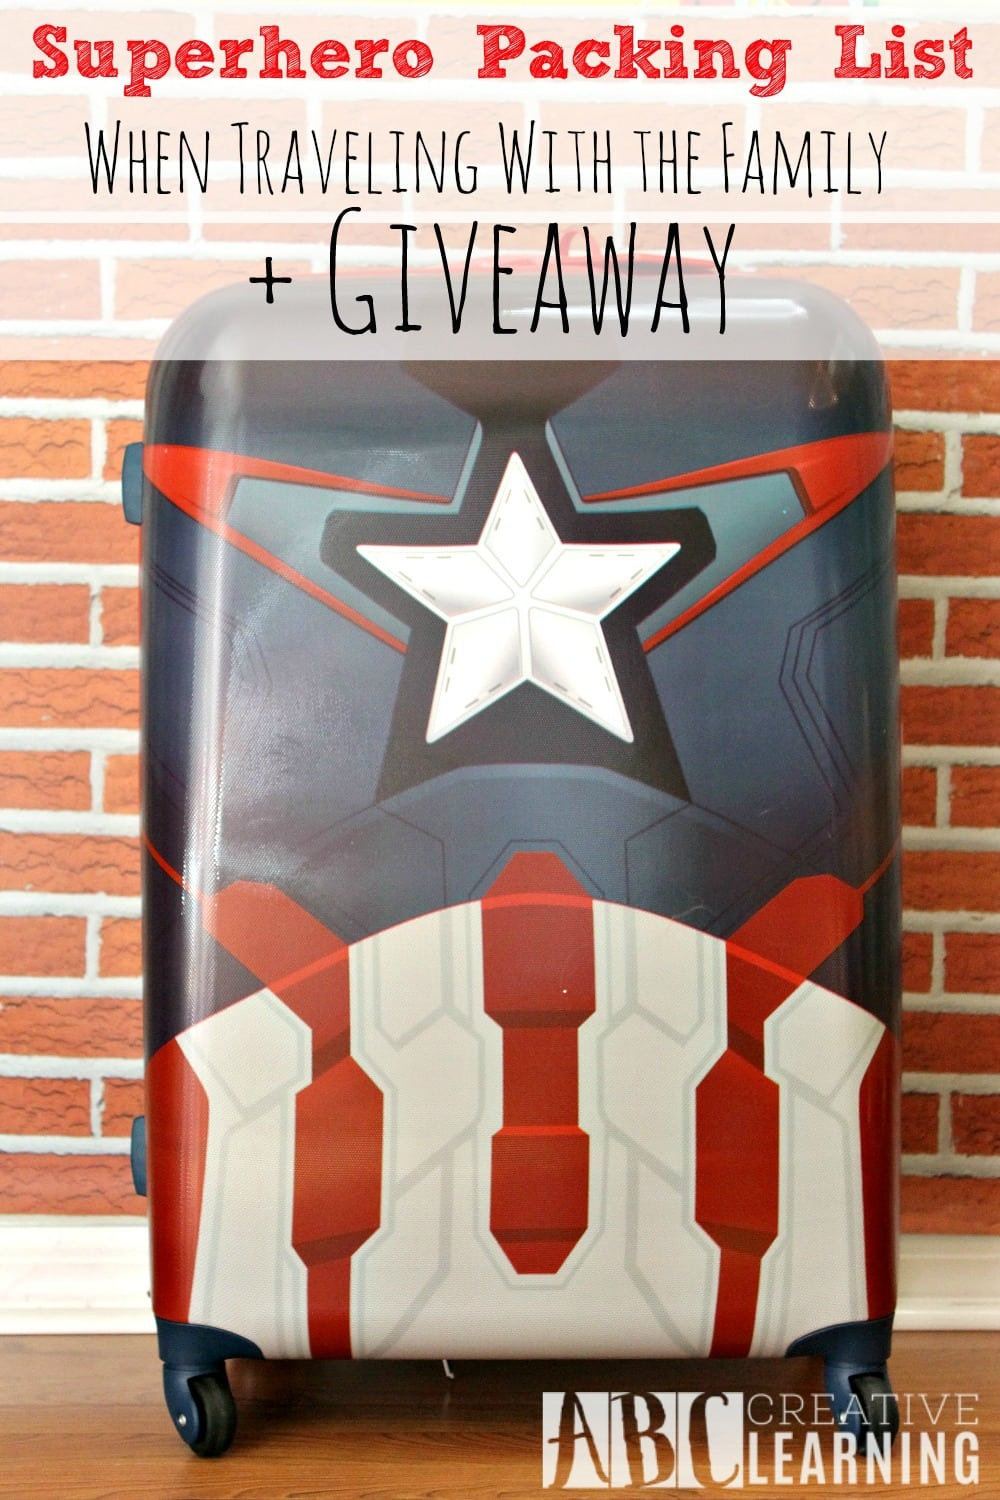 Superhero Packing List When Traveling With The Family + Giveaway